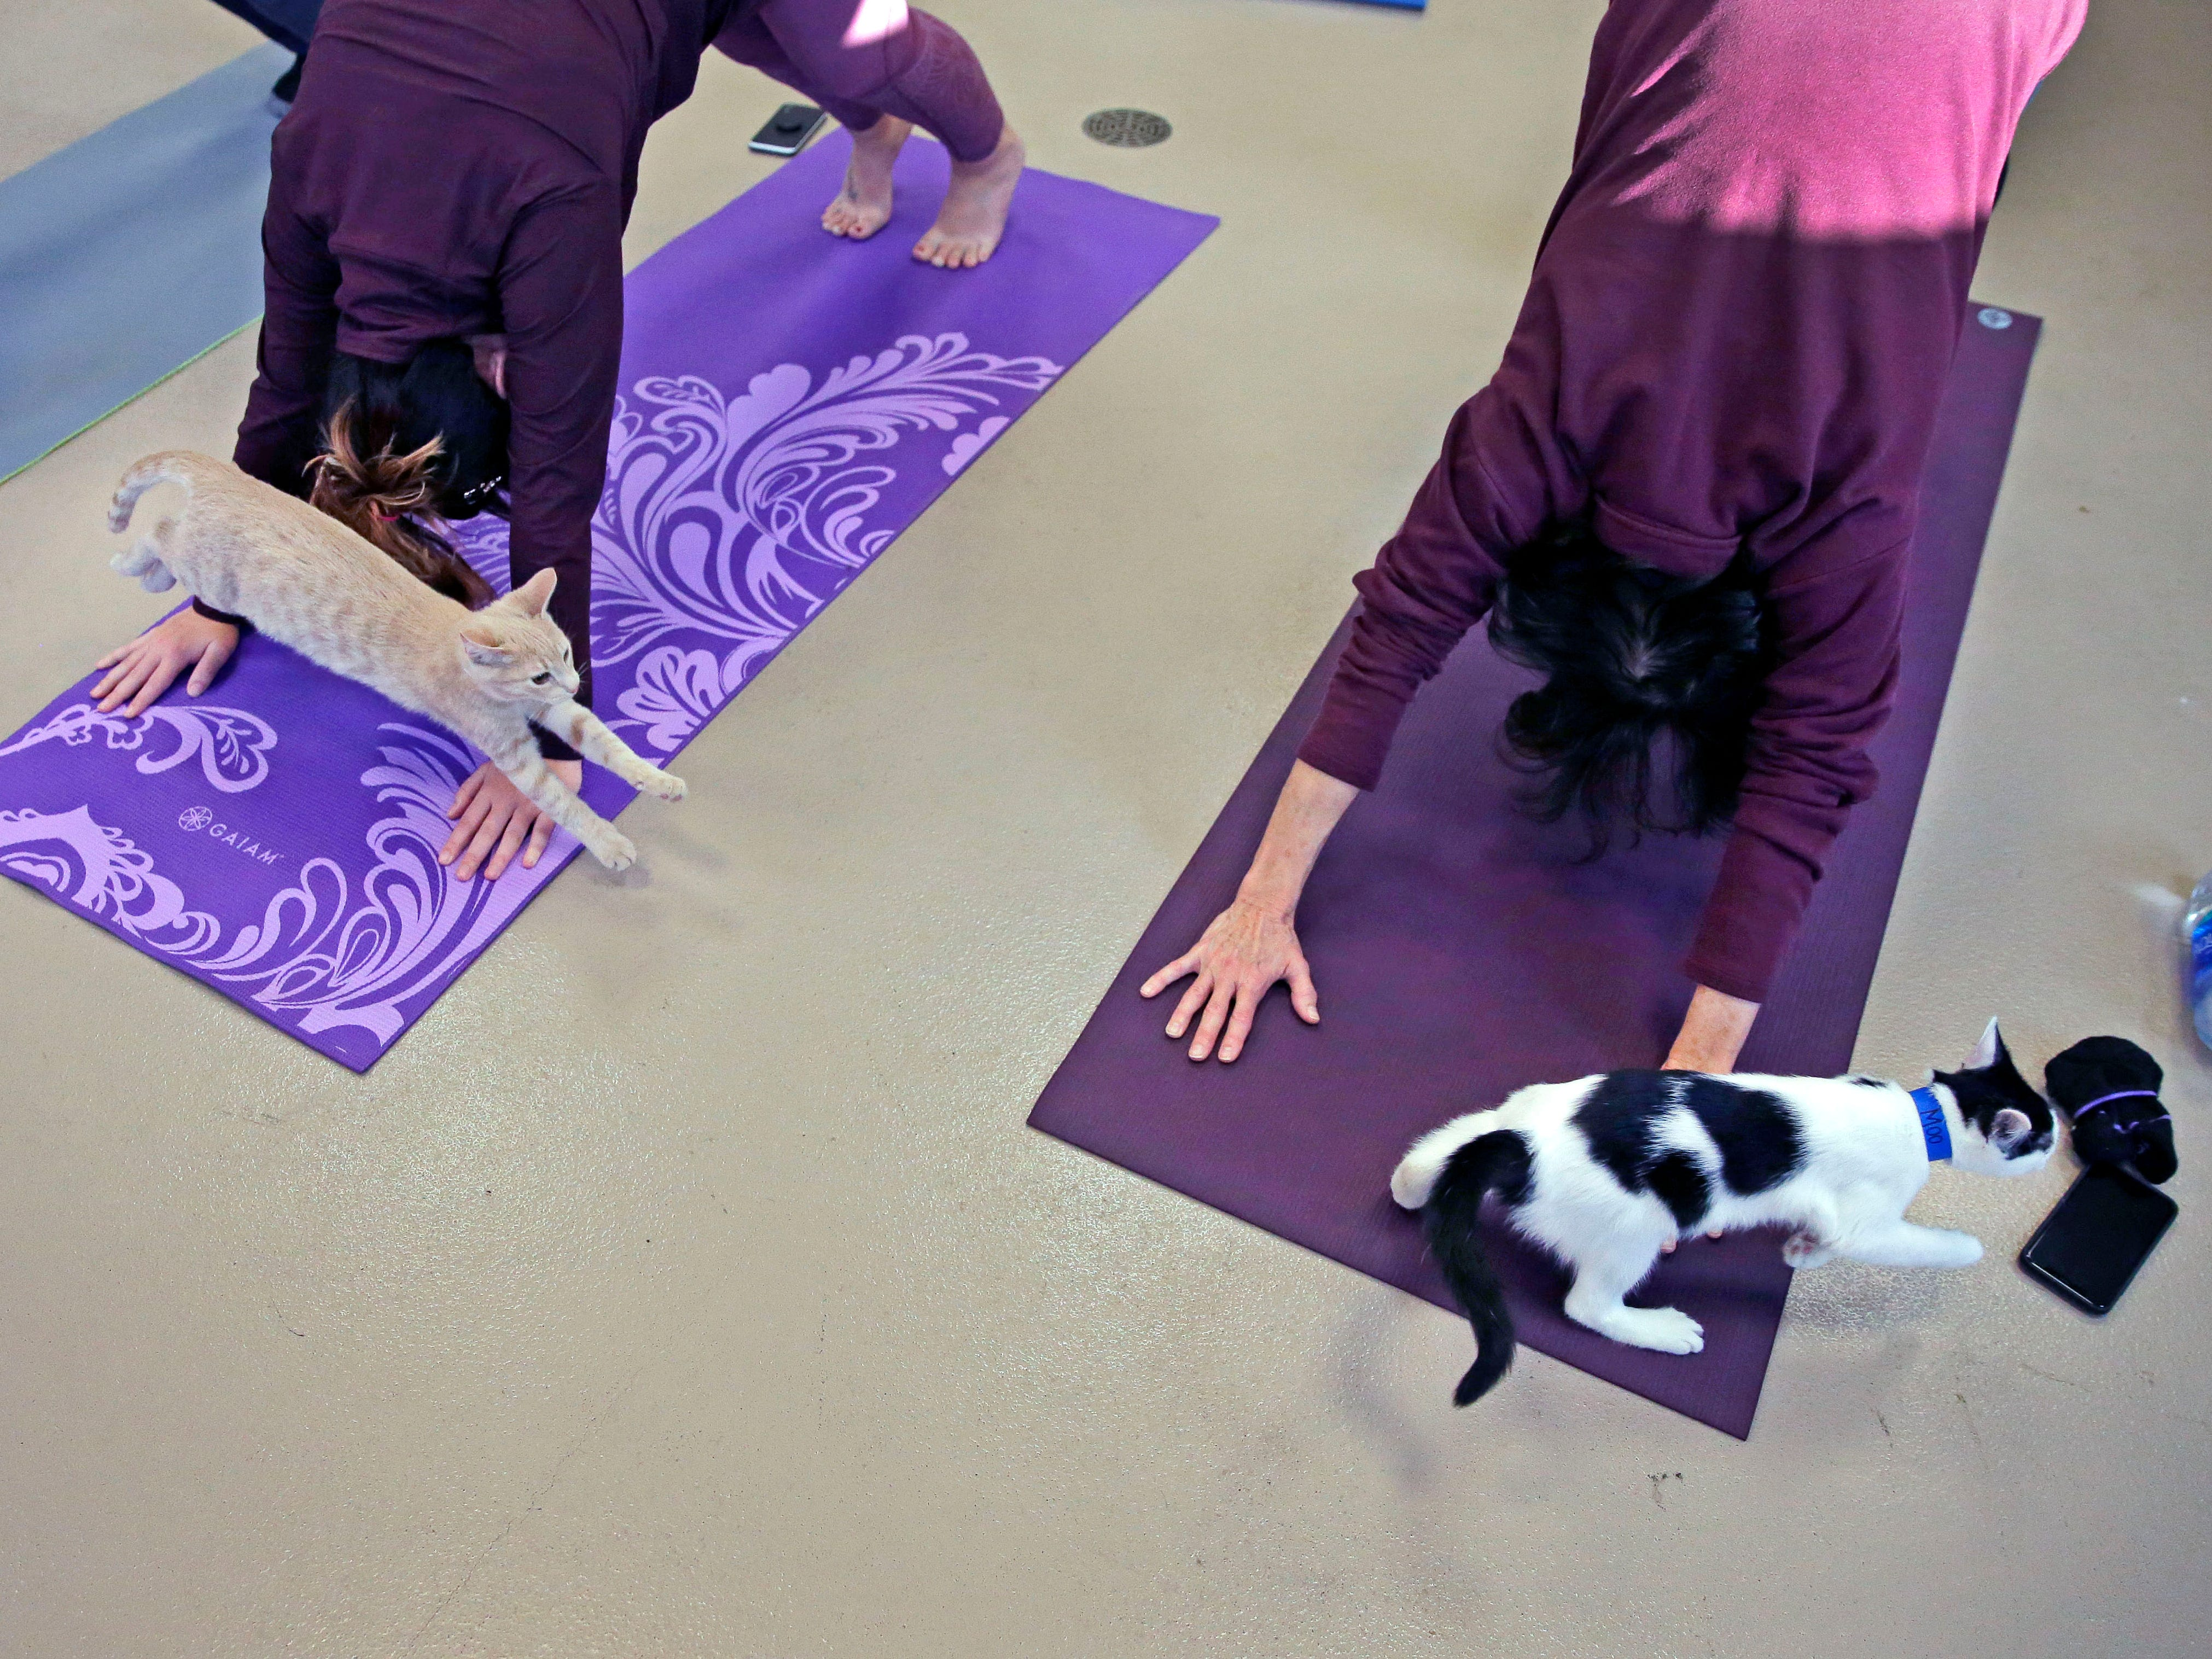 Kittens play as the Fox Valley Humane Association and Grace Under Fire Yoga bring together adoptable kittens and yoga class for Kitten Yoga on Saturday, Oct. 13, 2018, at the Fox Valley Humane Association in Appleton, Wis.